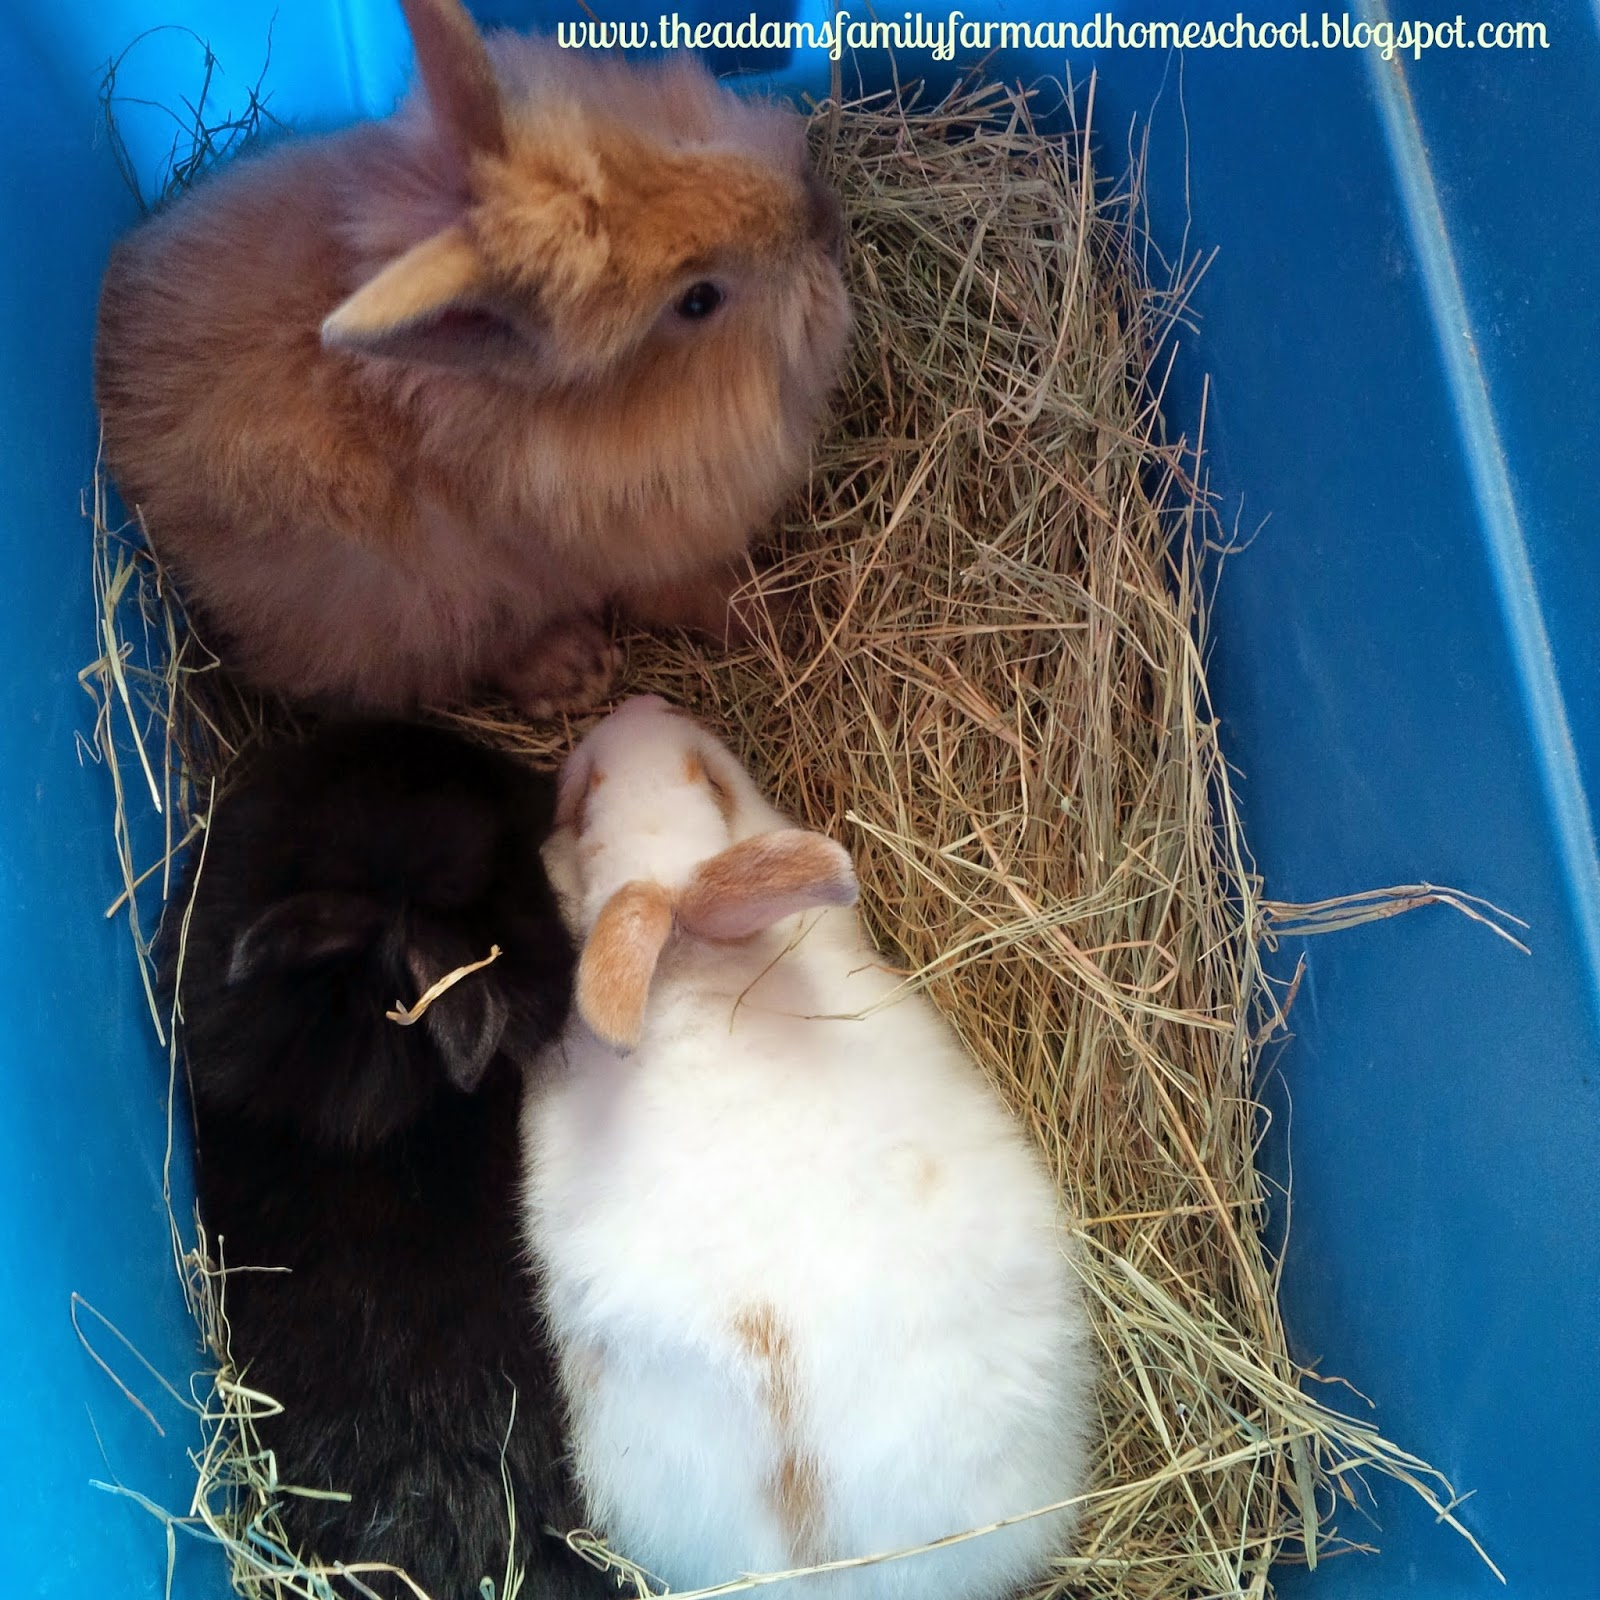 Baby Rabbits sitting in a box with hay